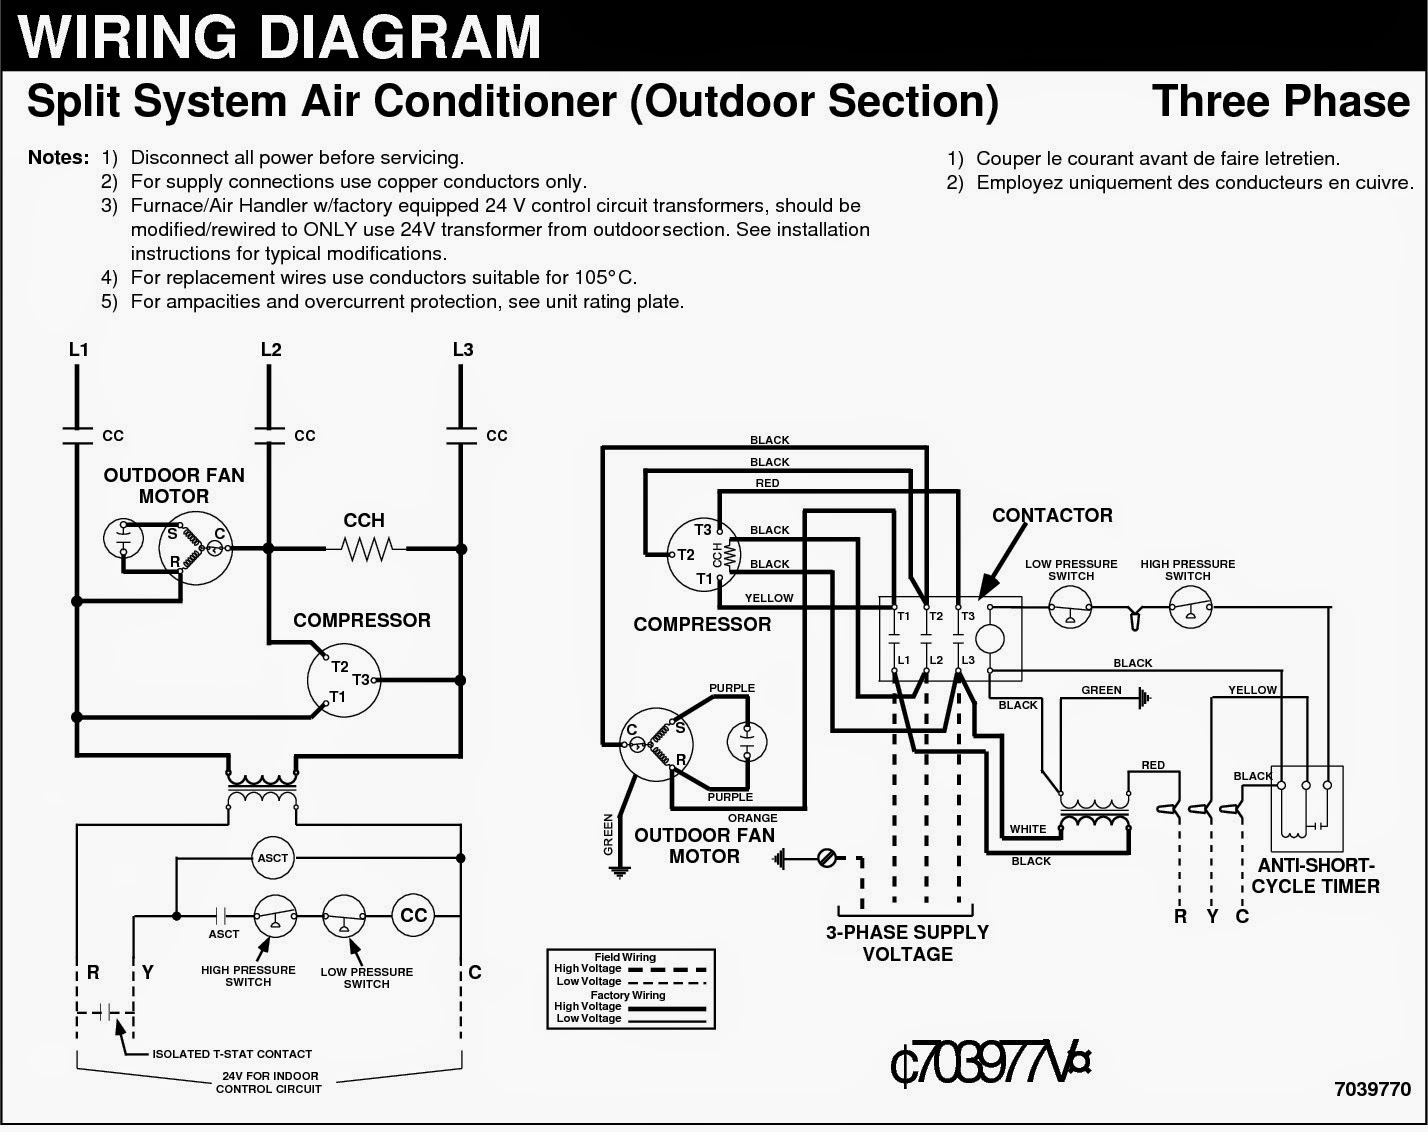 3+phase electrical wiring diagrams for air conditioning systems part two wiring diagram for frigidaire air conditioner at mifinder.co